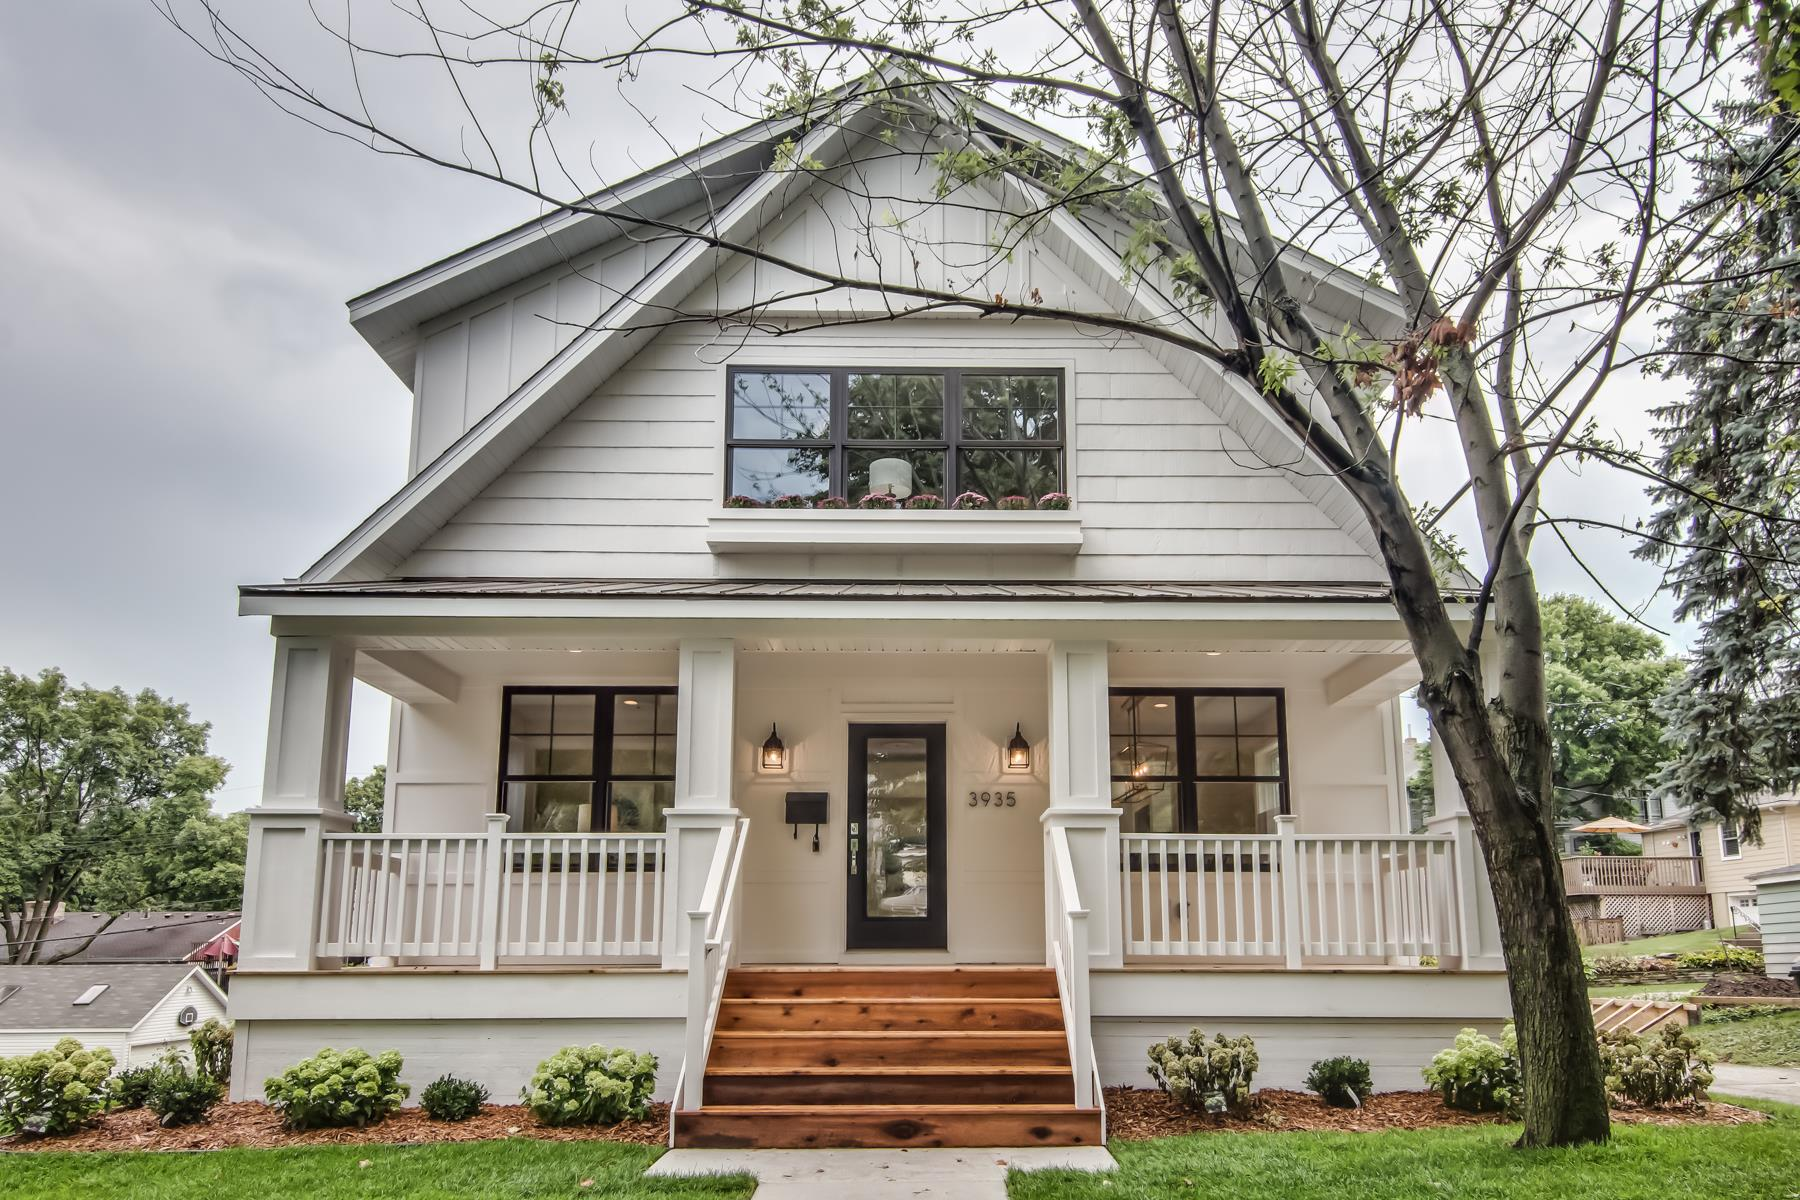 Single Family Home for Sale at 3935 Thomas Avenue S Linden Hills, Minneapolis, Minnesota 55410 United States